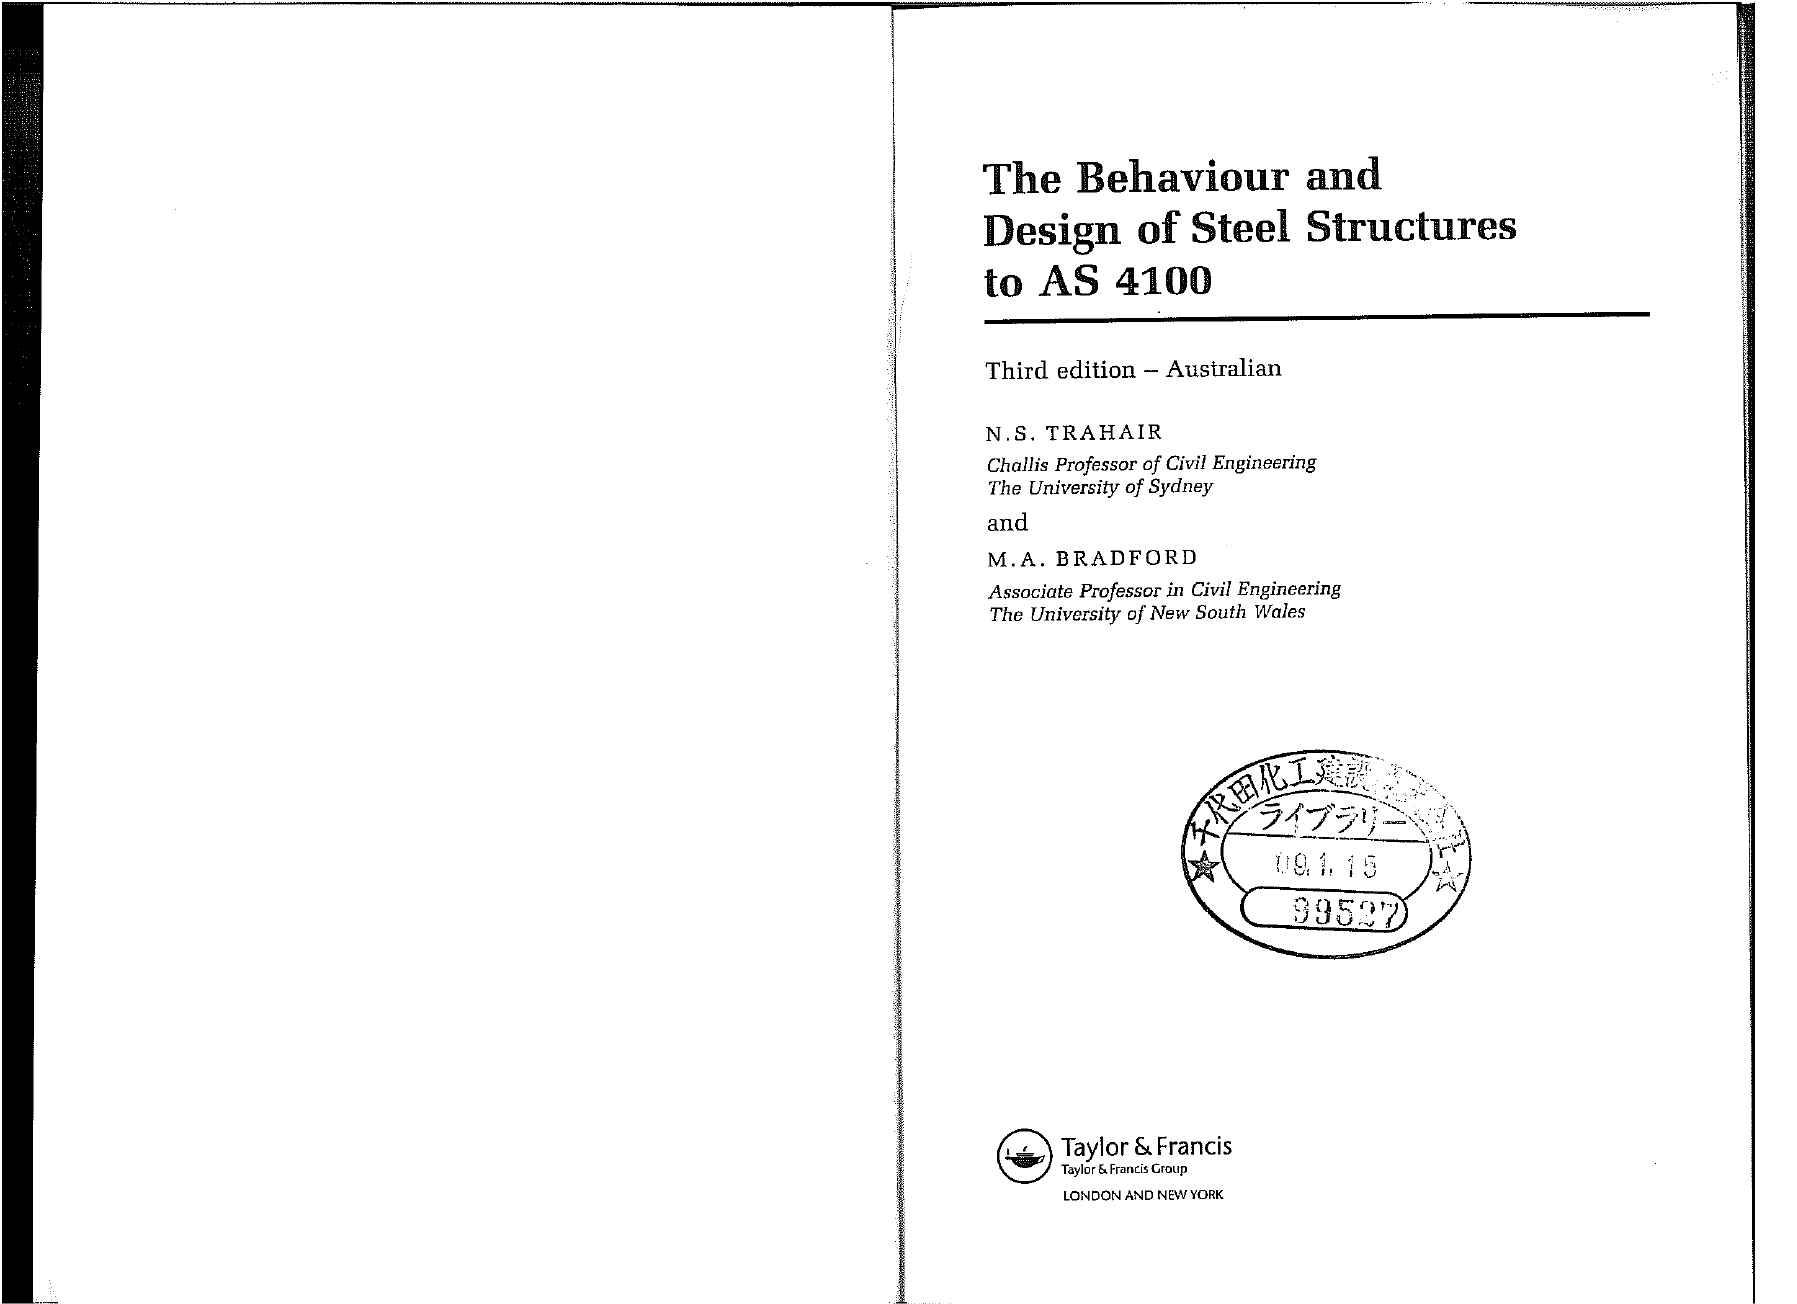 The Behaviour And Design Of Steel Structures To As 4100 Pdf Document